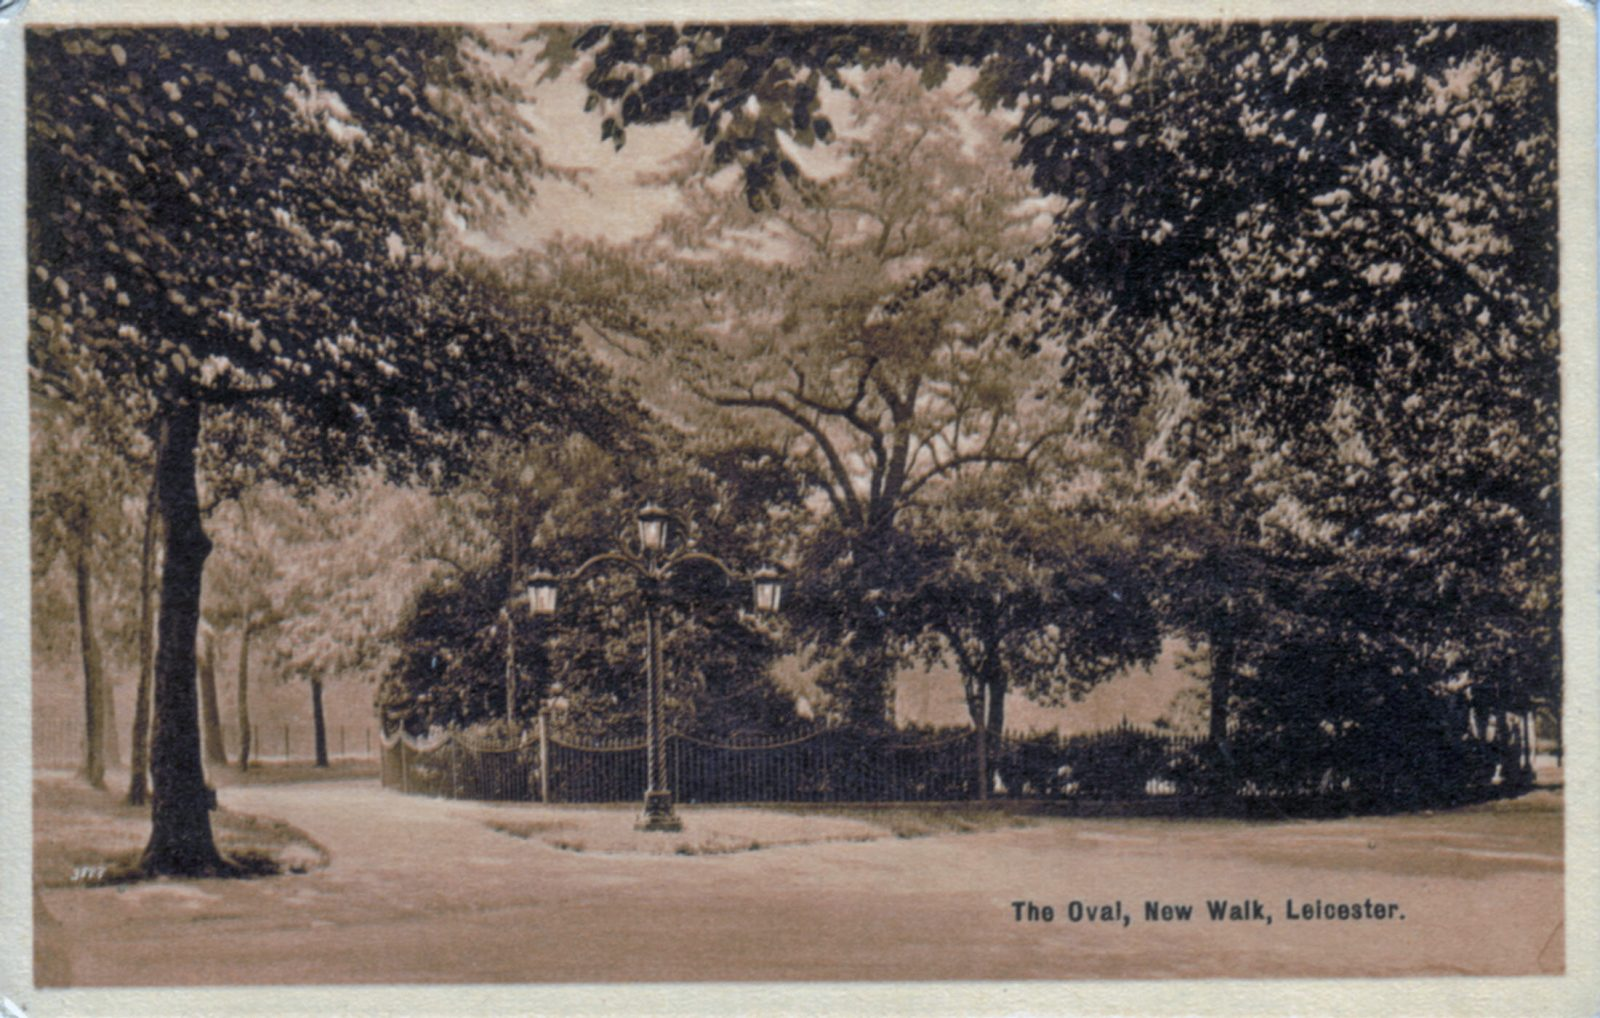 New Walk, Leicester. Undated: The Oval: a secluded area surrounded by trees, shrubs and railings (File:1104)